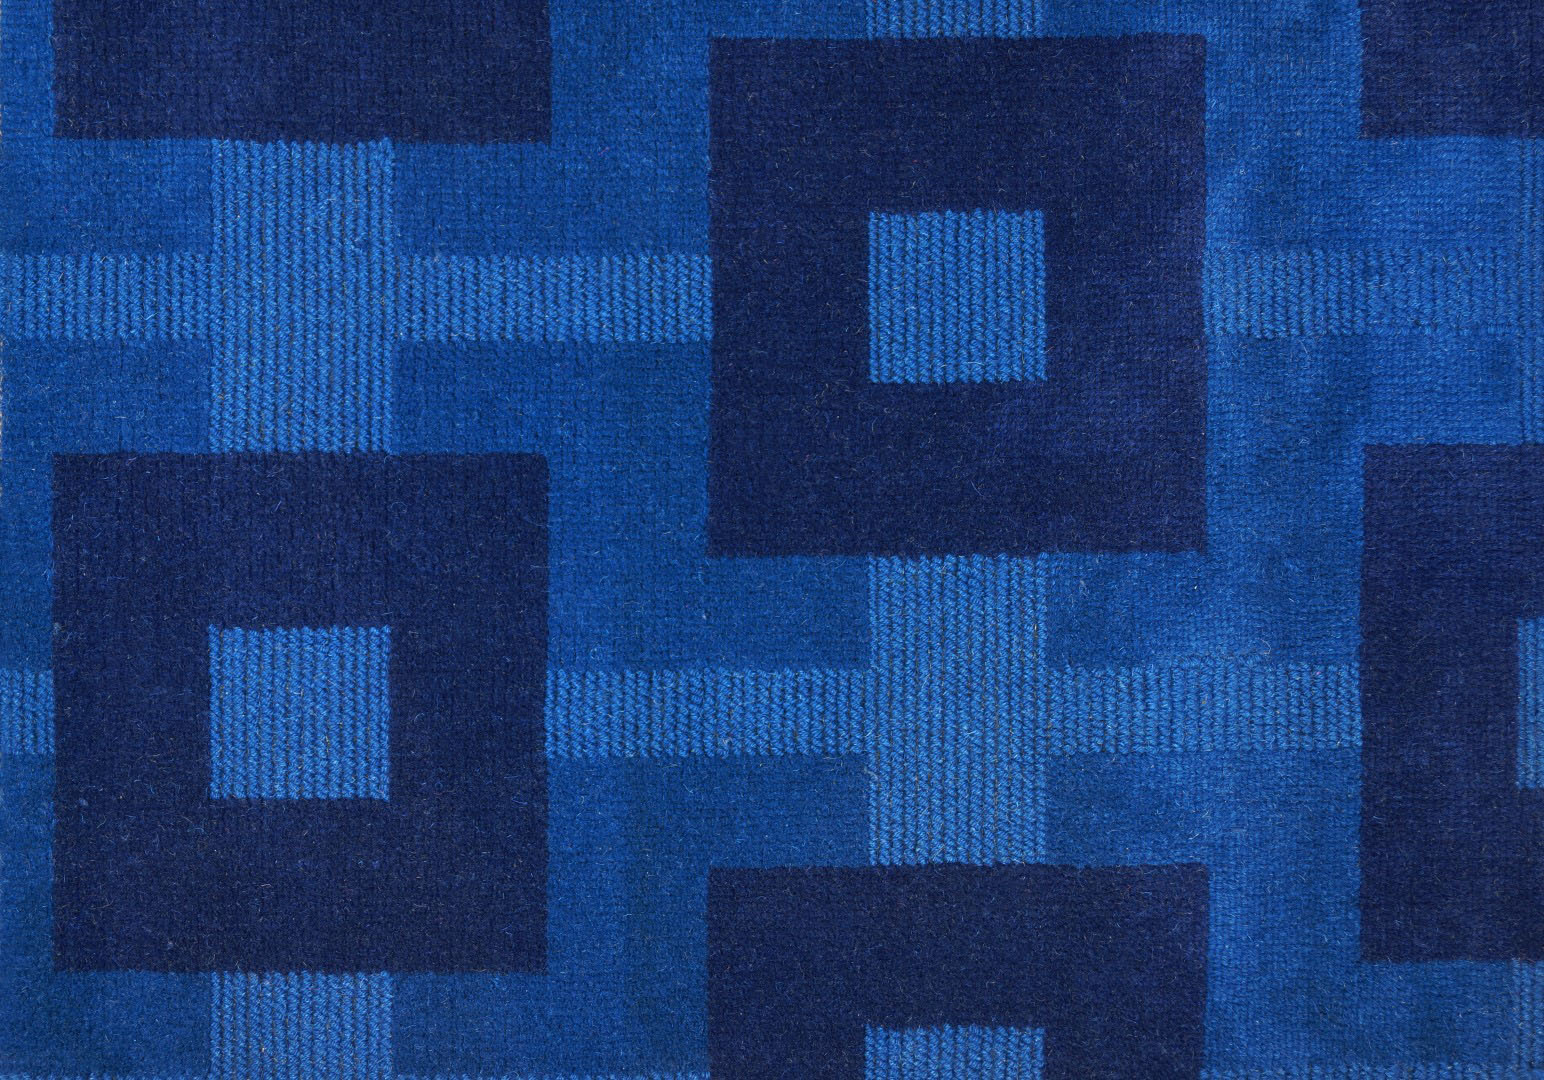 moquette tiss e 100 laine motif graphique beaut bleu. Black Bedroom Furniture Sets. Home Design Ideas